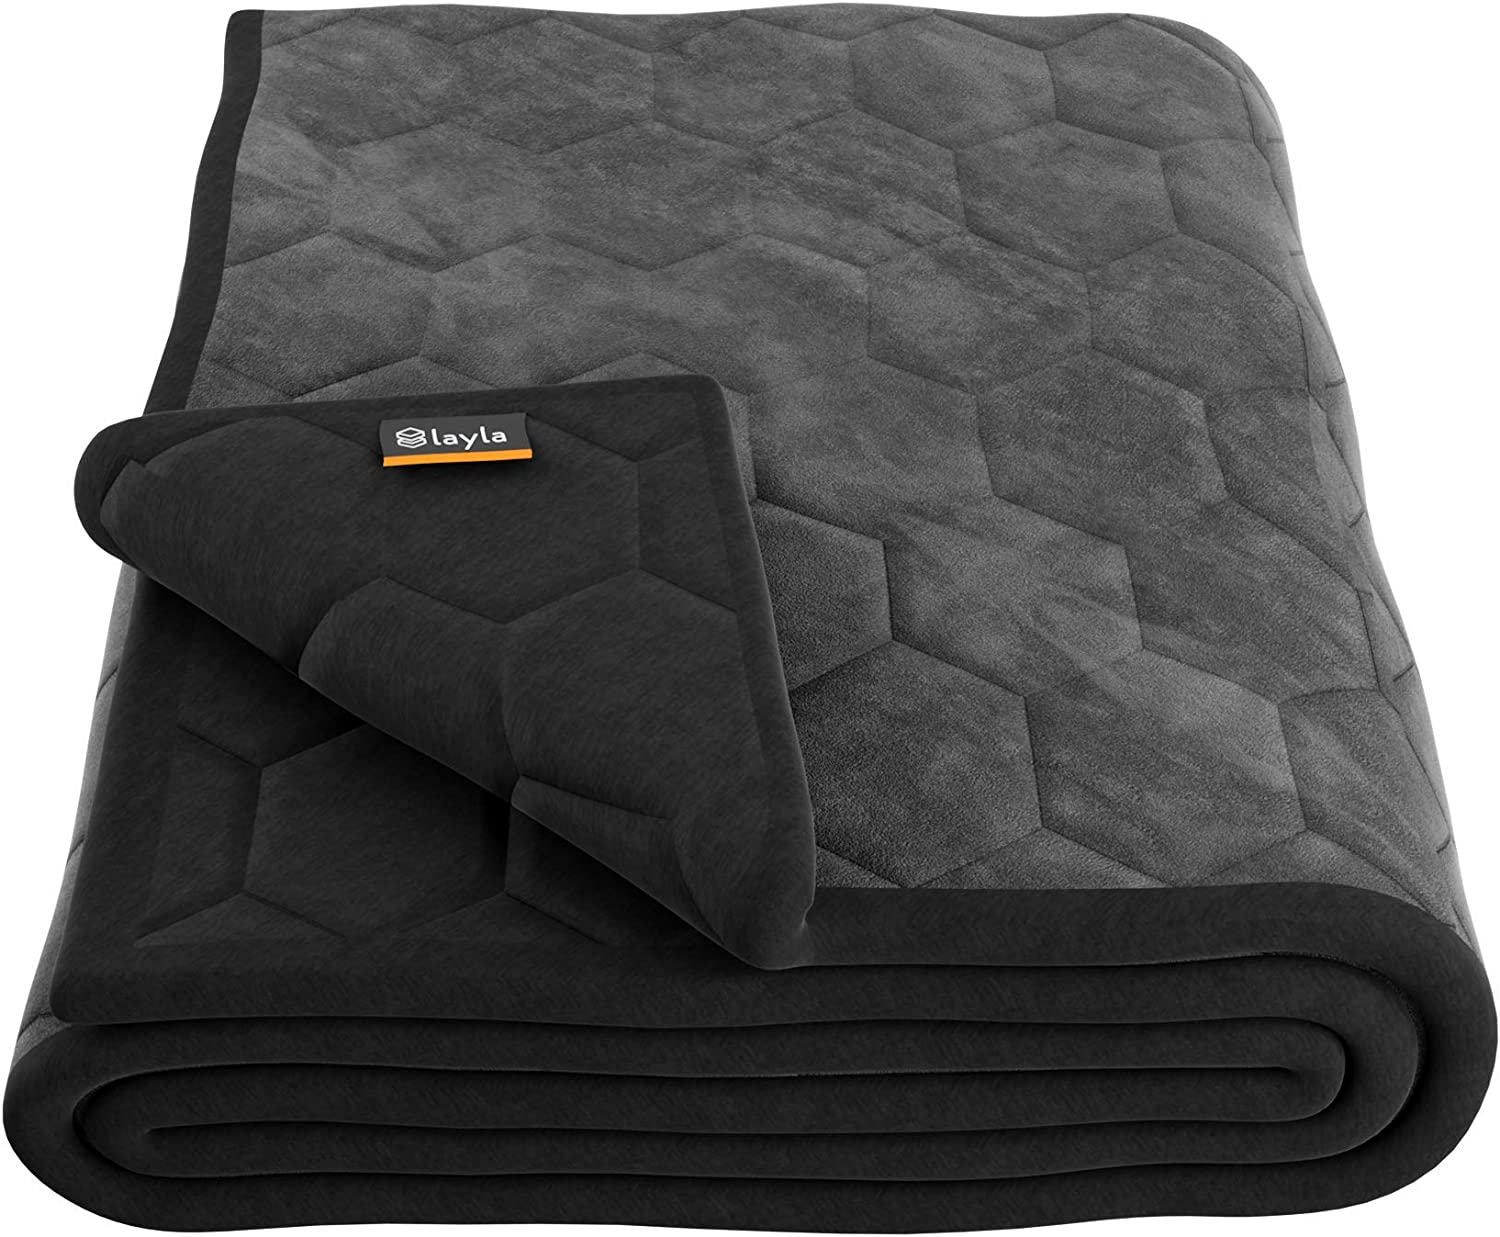 Layla Weighted Blanket with Fleecy Top Layer and 300 Thread-Count 100% Cotton Bottom Layer (King) sleep blankets - 71kpF1Fu AL - Sleep blankets review – benefits of sleeping with weighted blankets